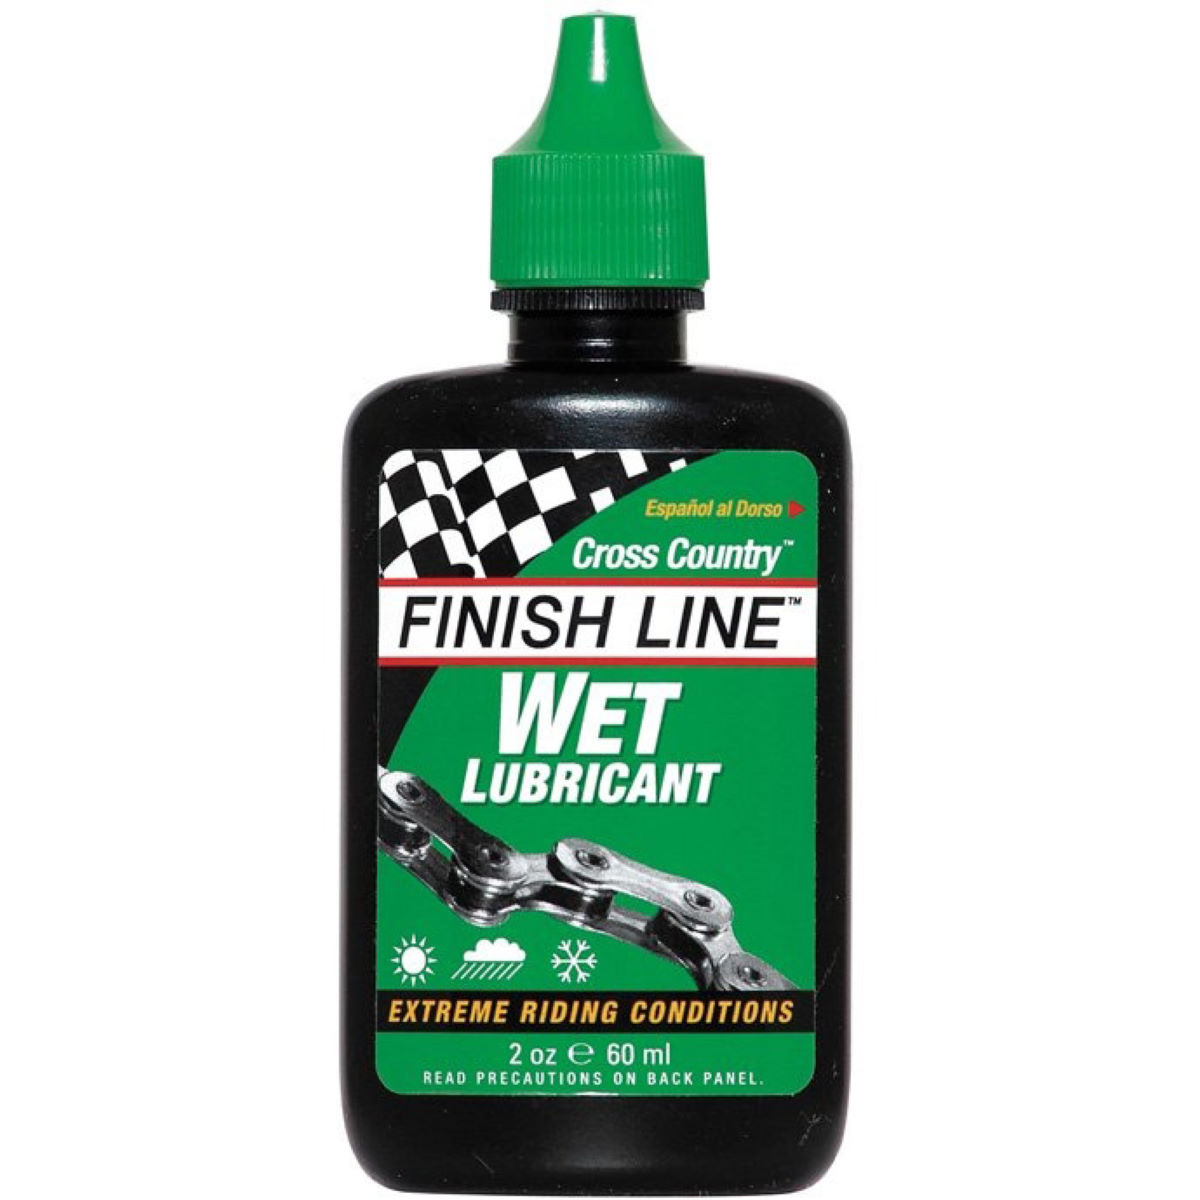 Finish Line Finish Line Cross Country Wet Lube - 60ml   Lube